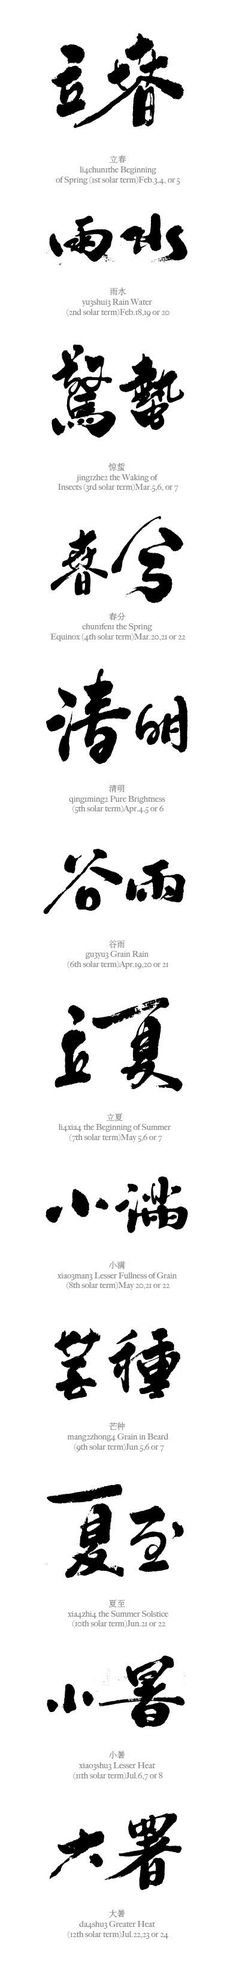 Chinese Calligraphy with translations. Traditional Chinese characters are beautiful!